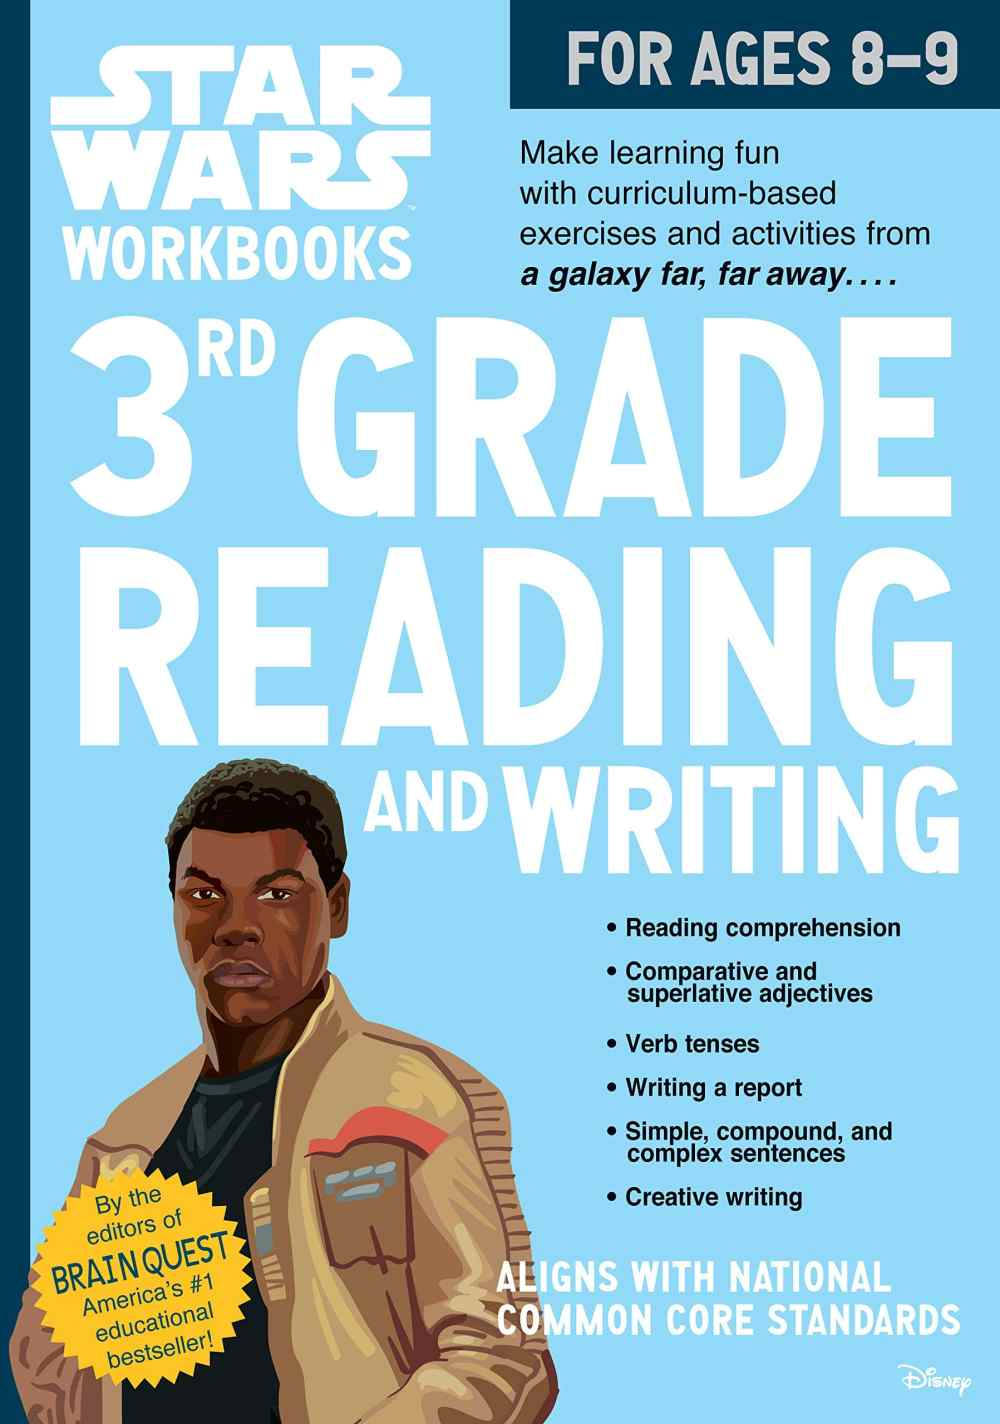 medium resolution of Star Wars Workbook: 3rd Grade Reading and Writing - A2Z Science \u0026 Learning  Toy Store